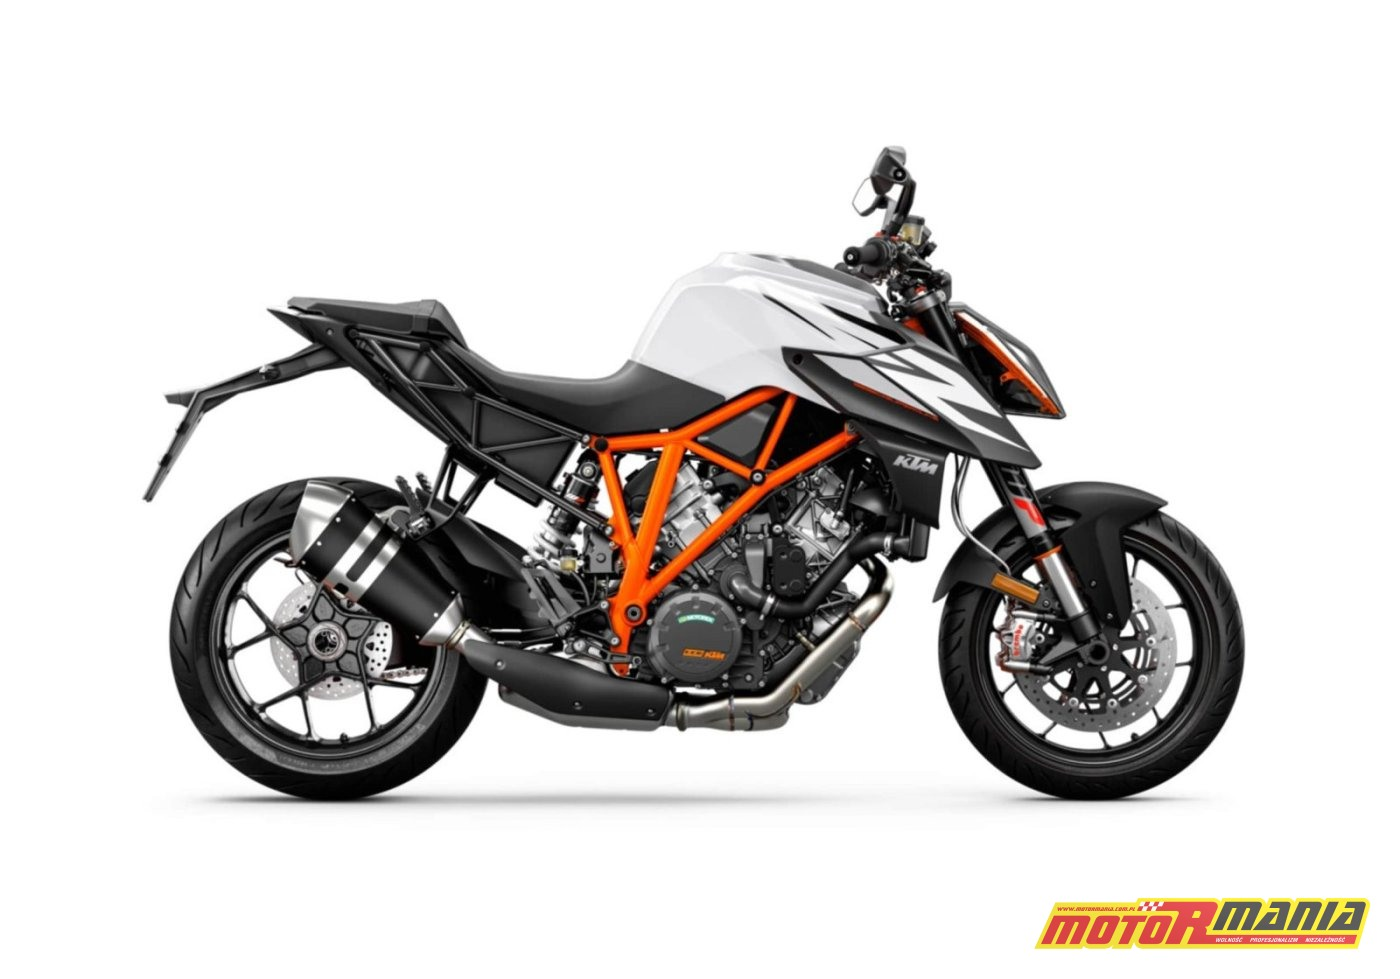 2019-KTM-1290-SUPER-DUKE-R-WHITE-min-1